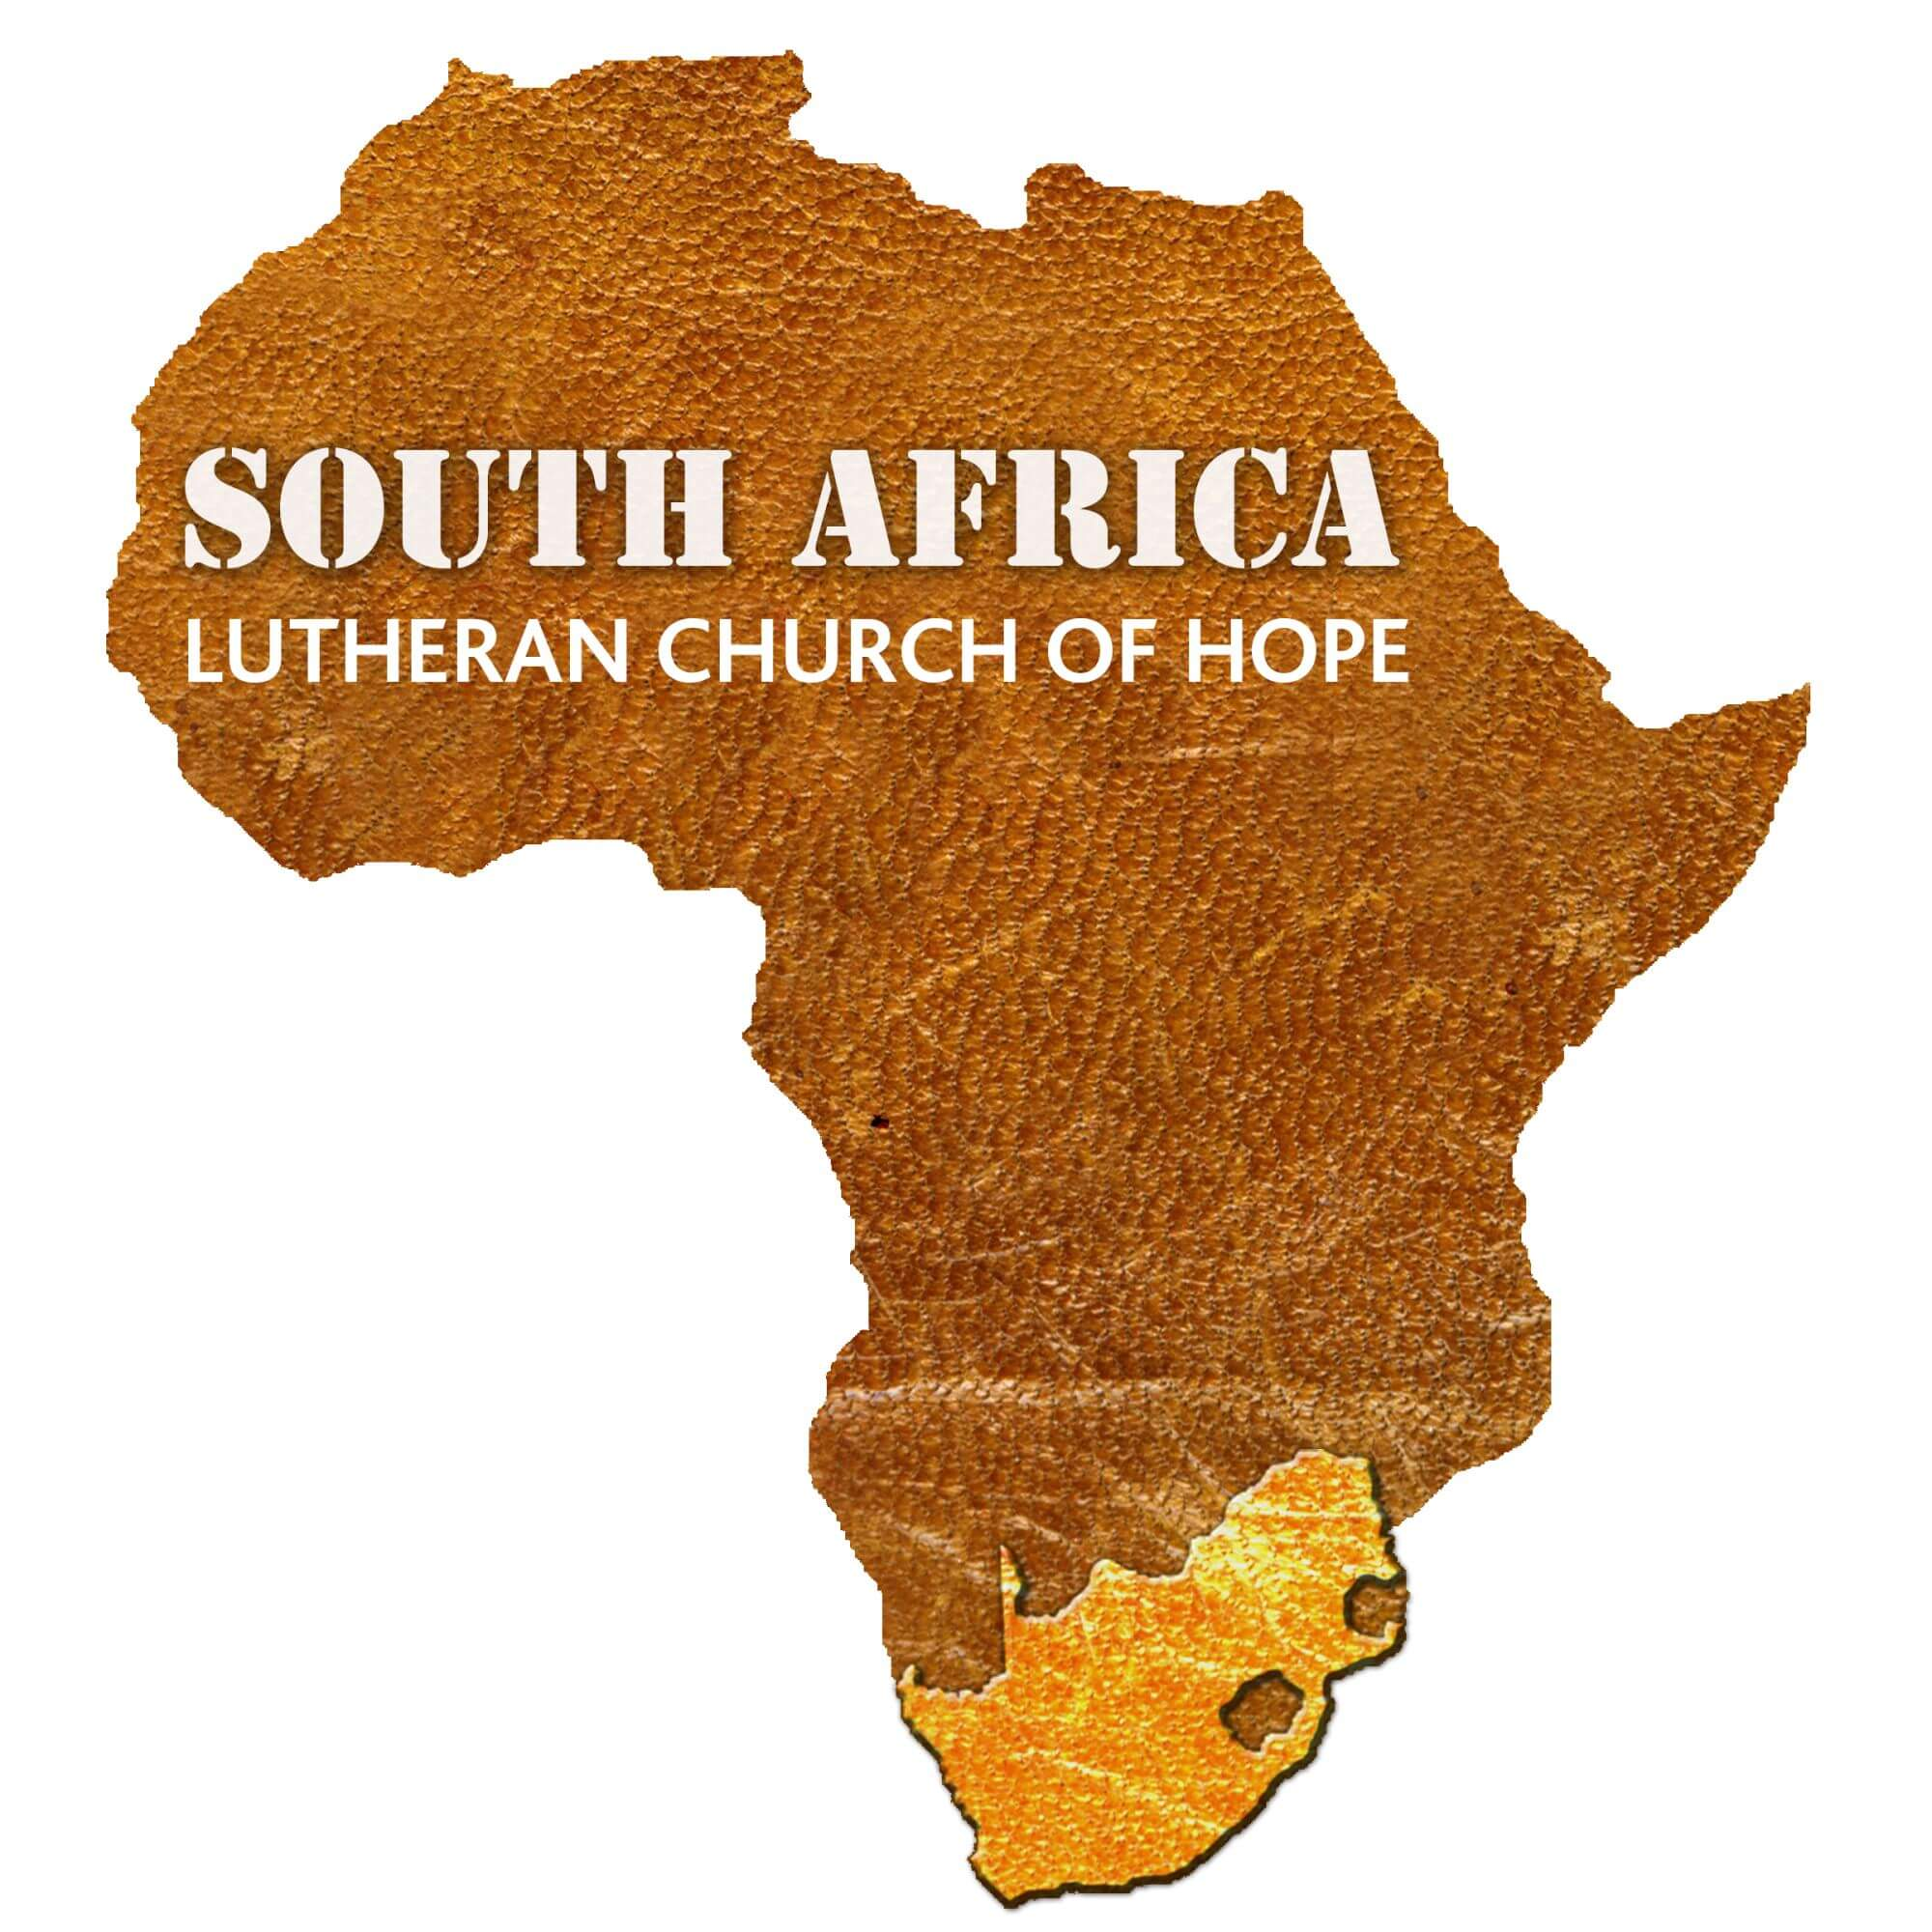 Mission South Africa